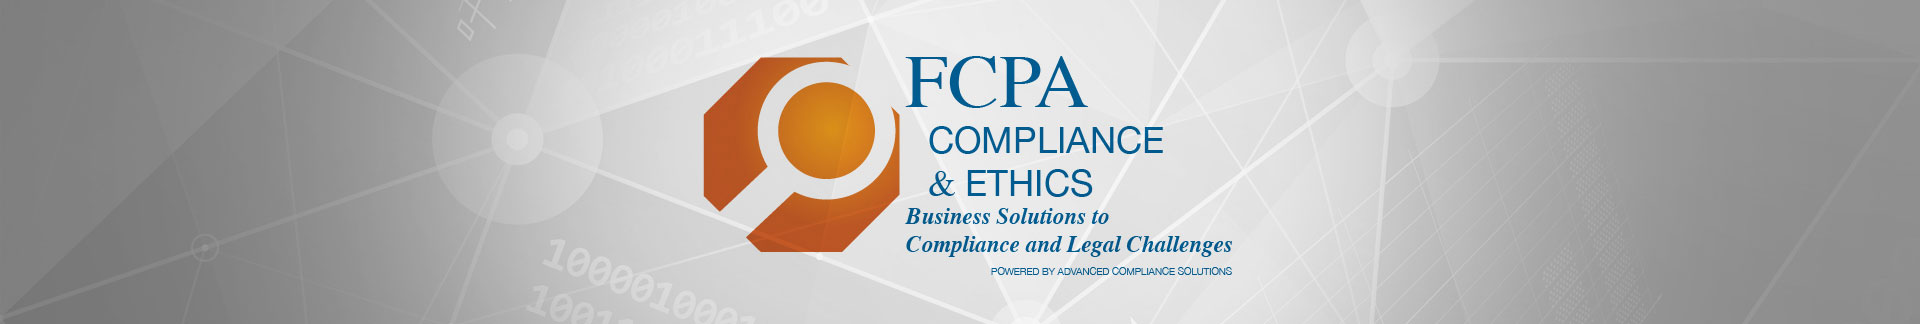 FCPA Compliance and Ethics news banner